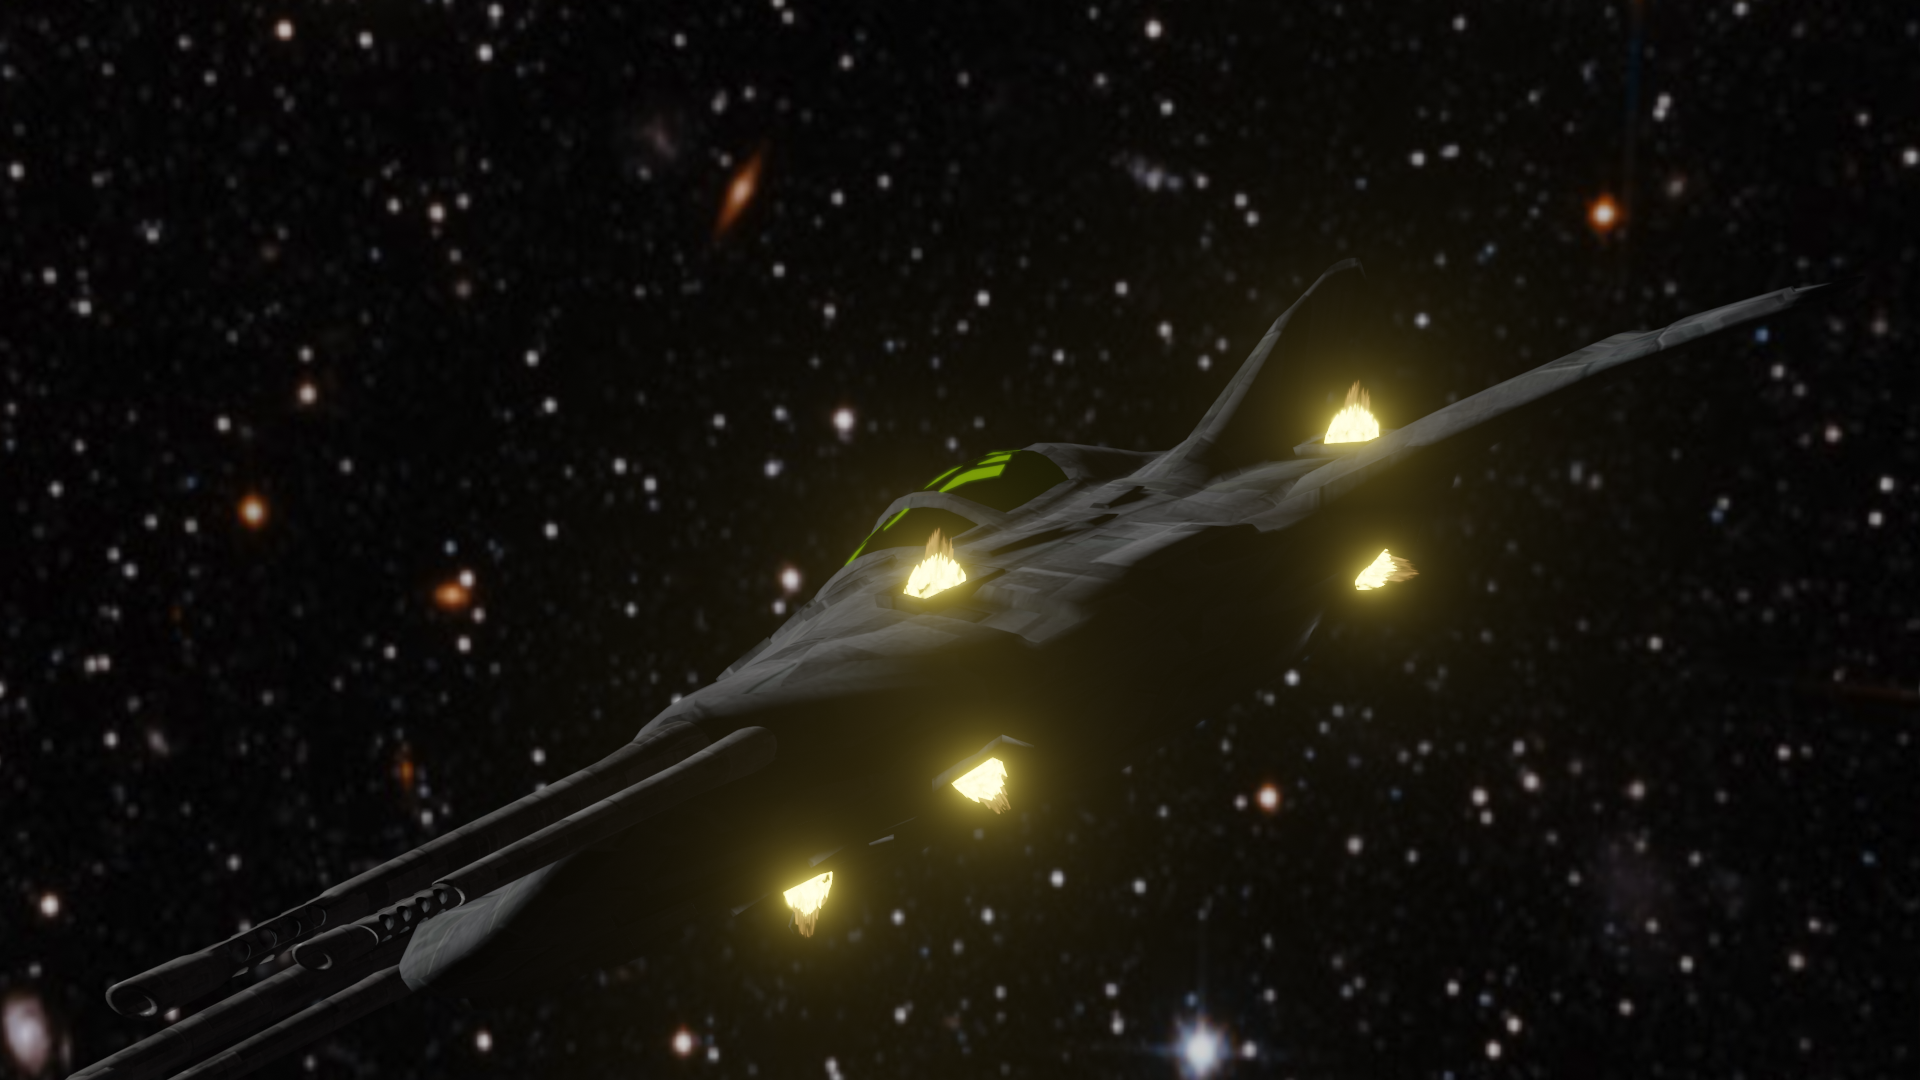 Small Sci-Fi Fighter preview image 3